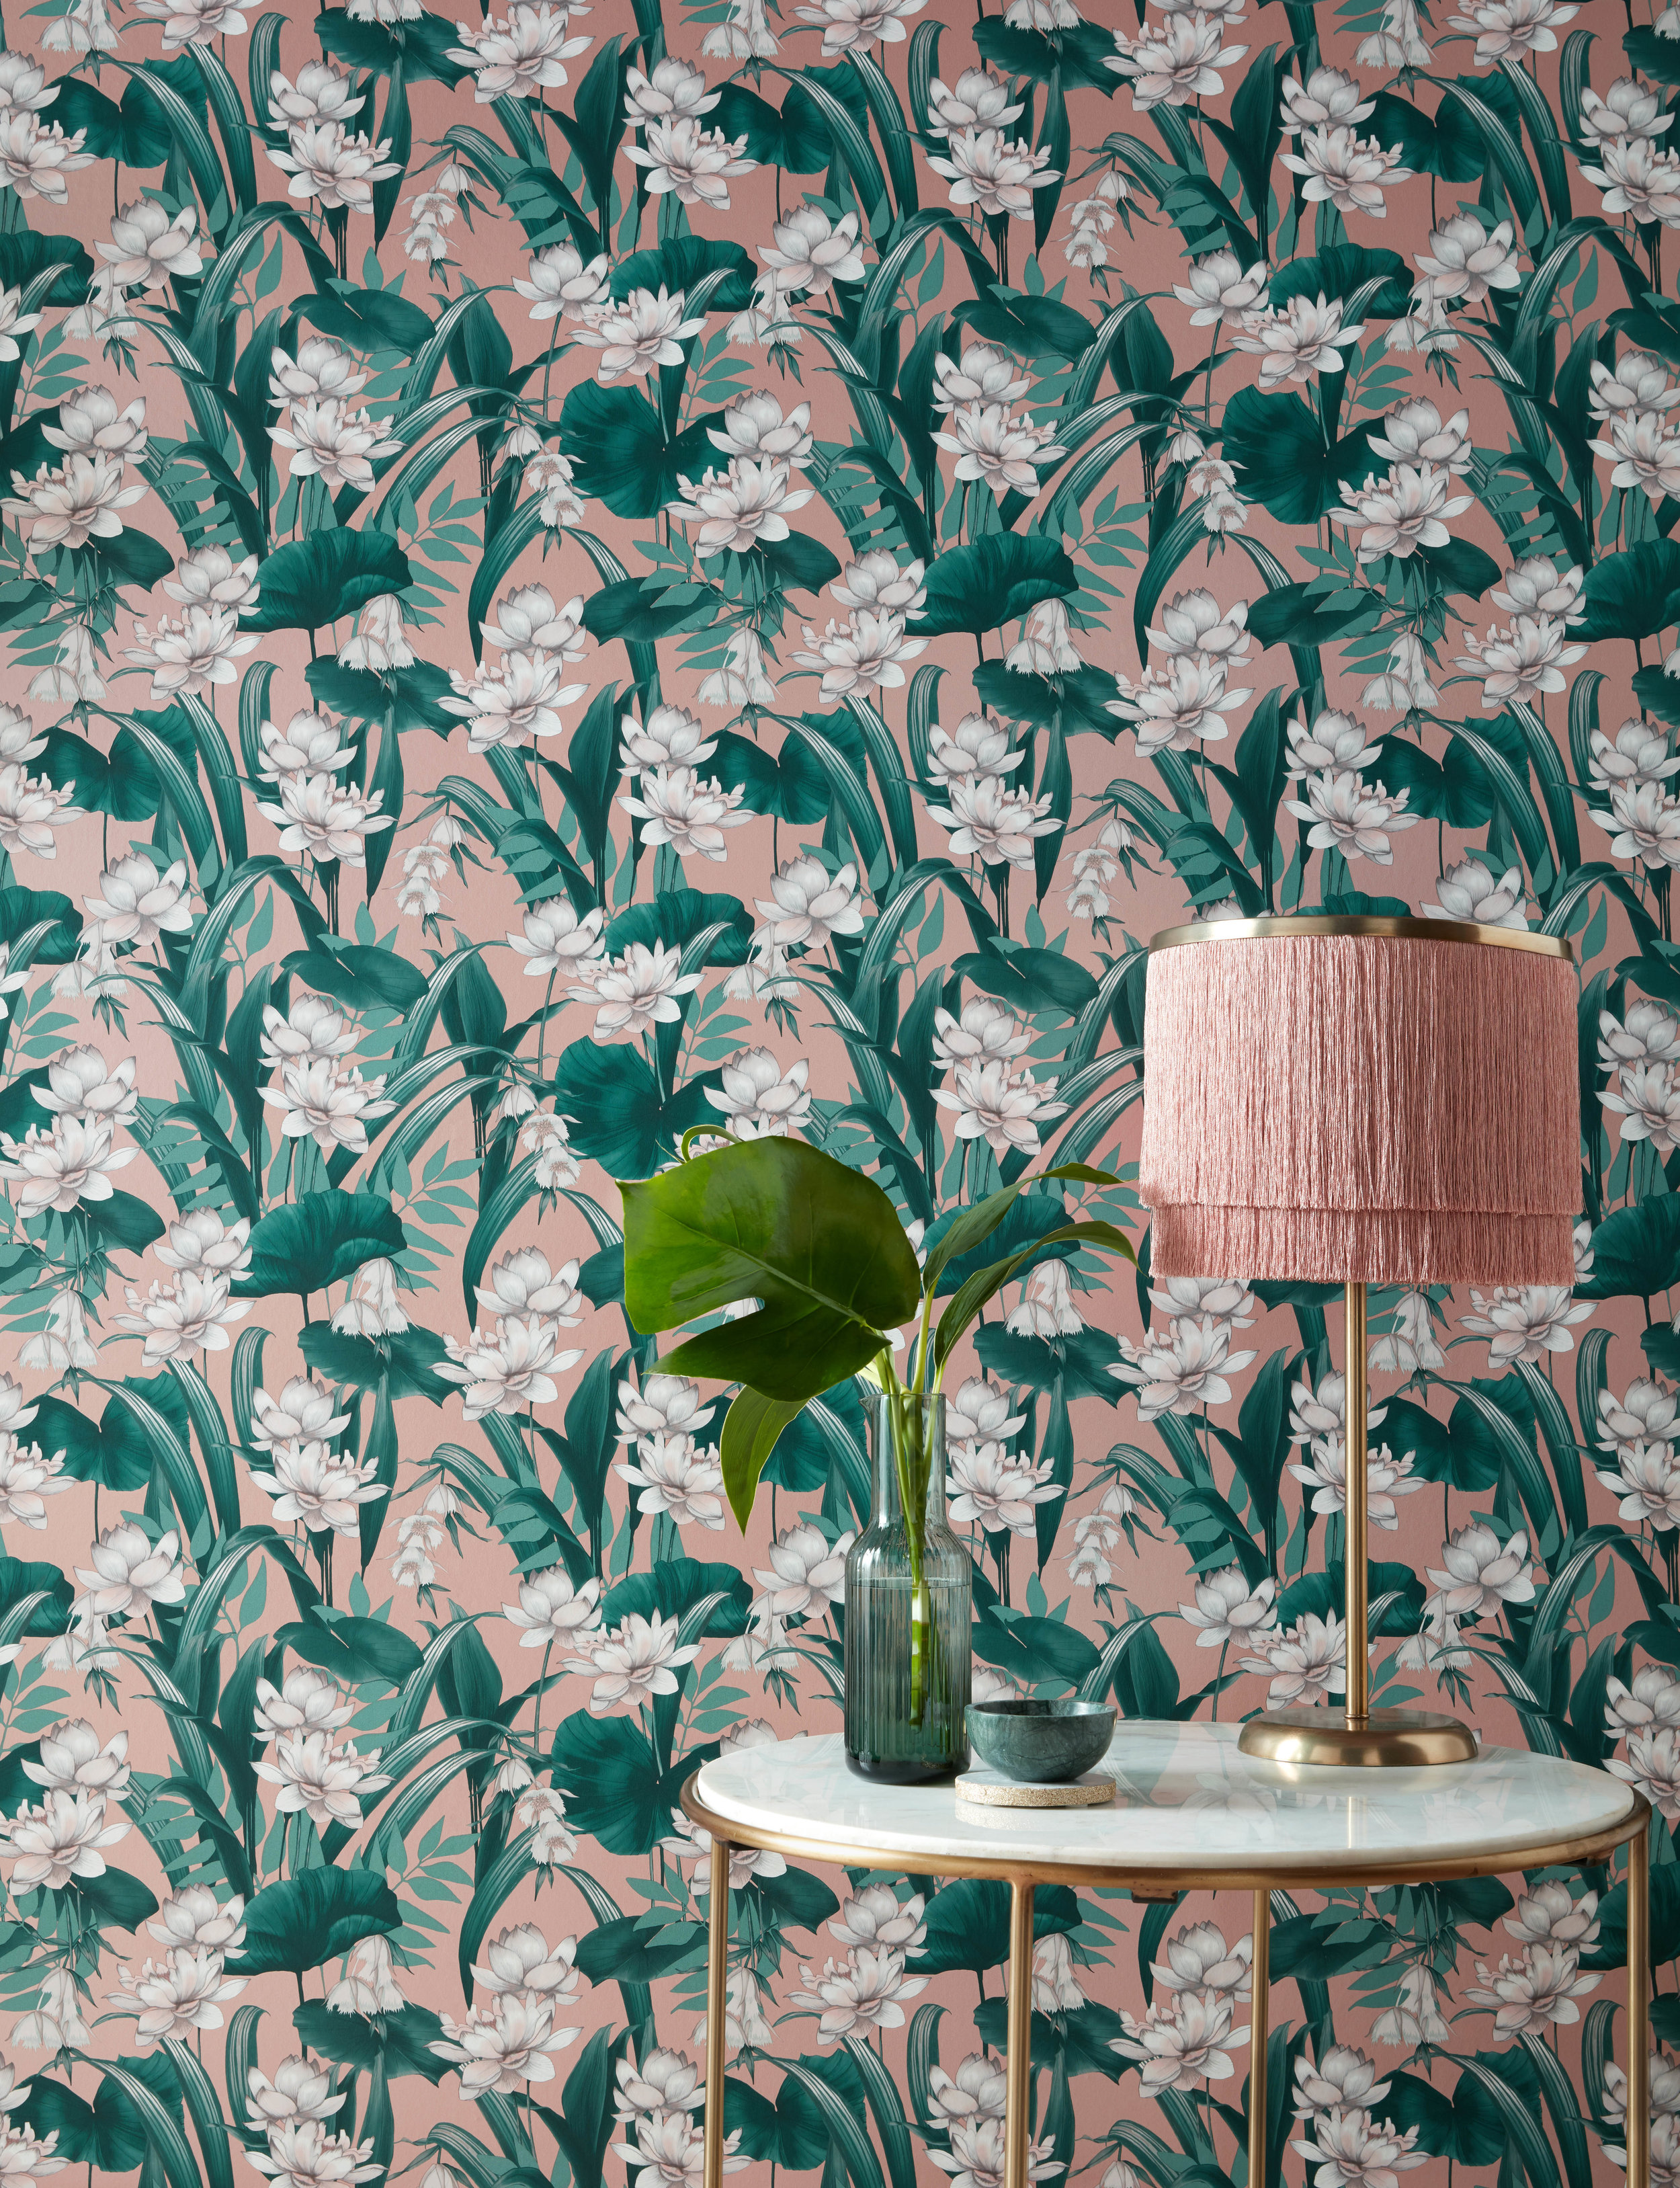 Accessorize Celeste Wallpaper - Blush Pink Glimmer copy.jpg